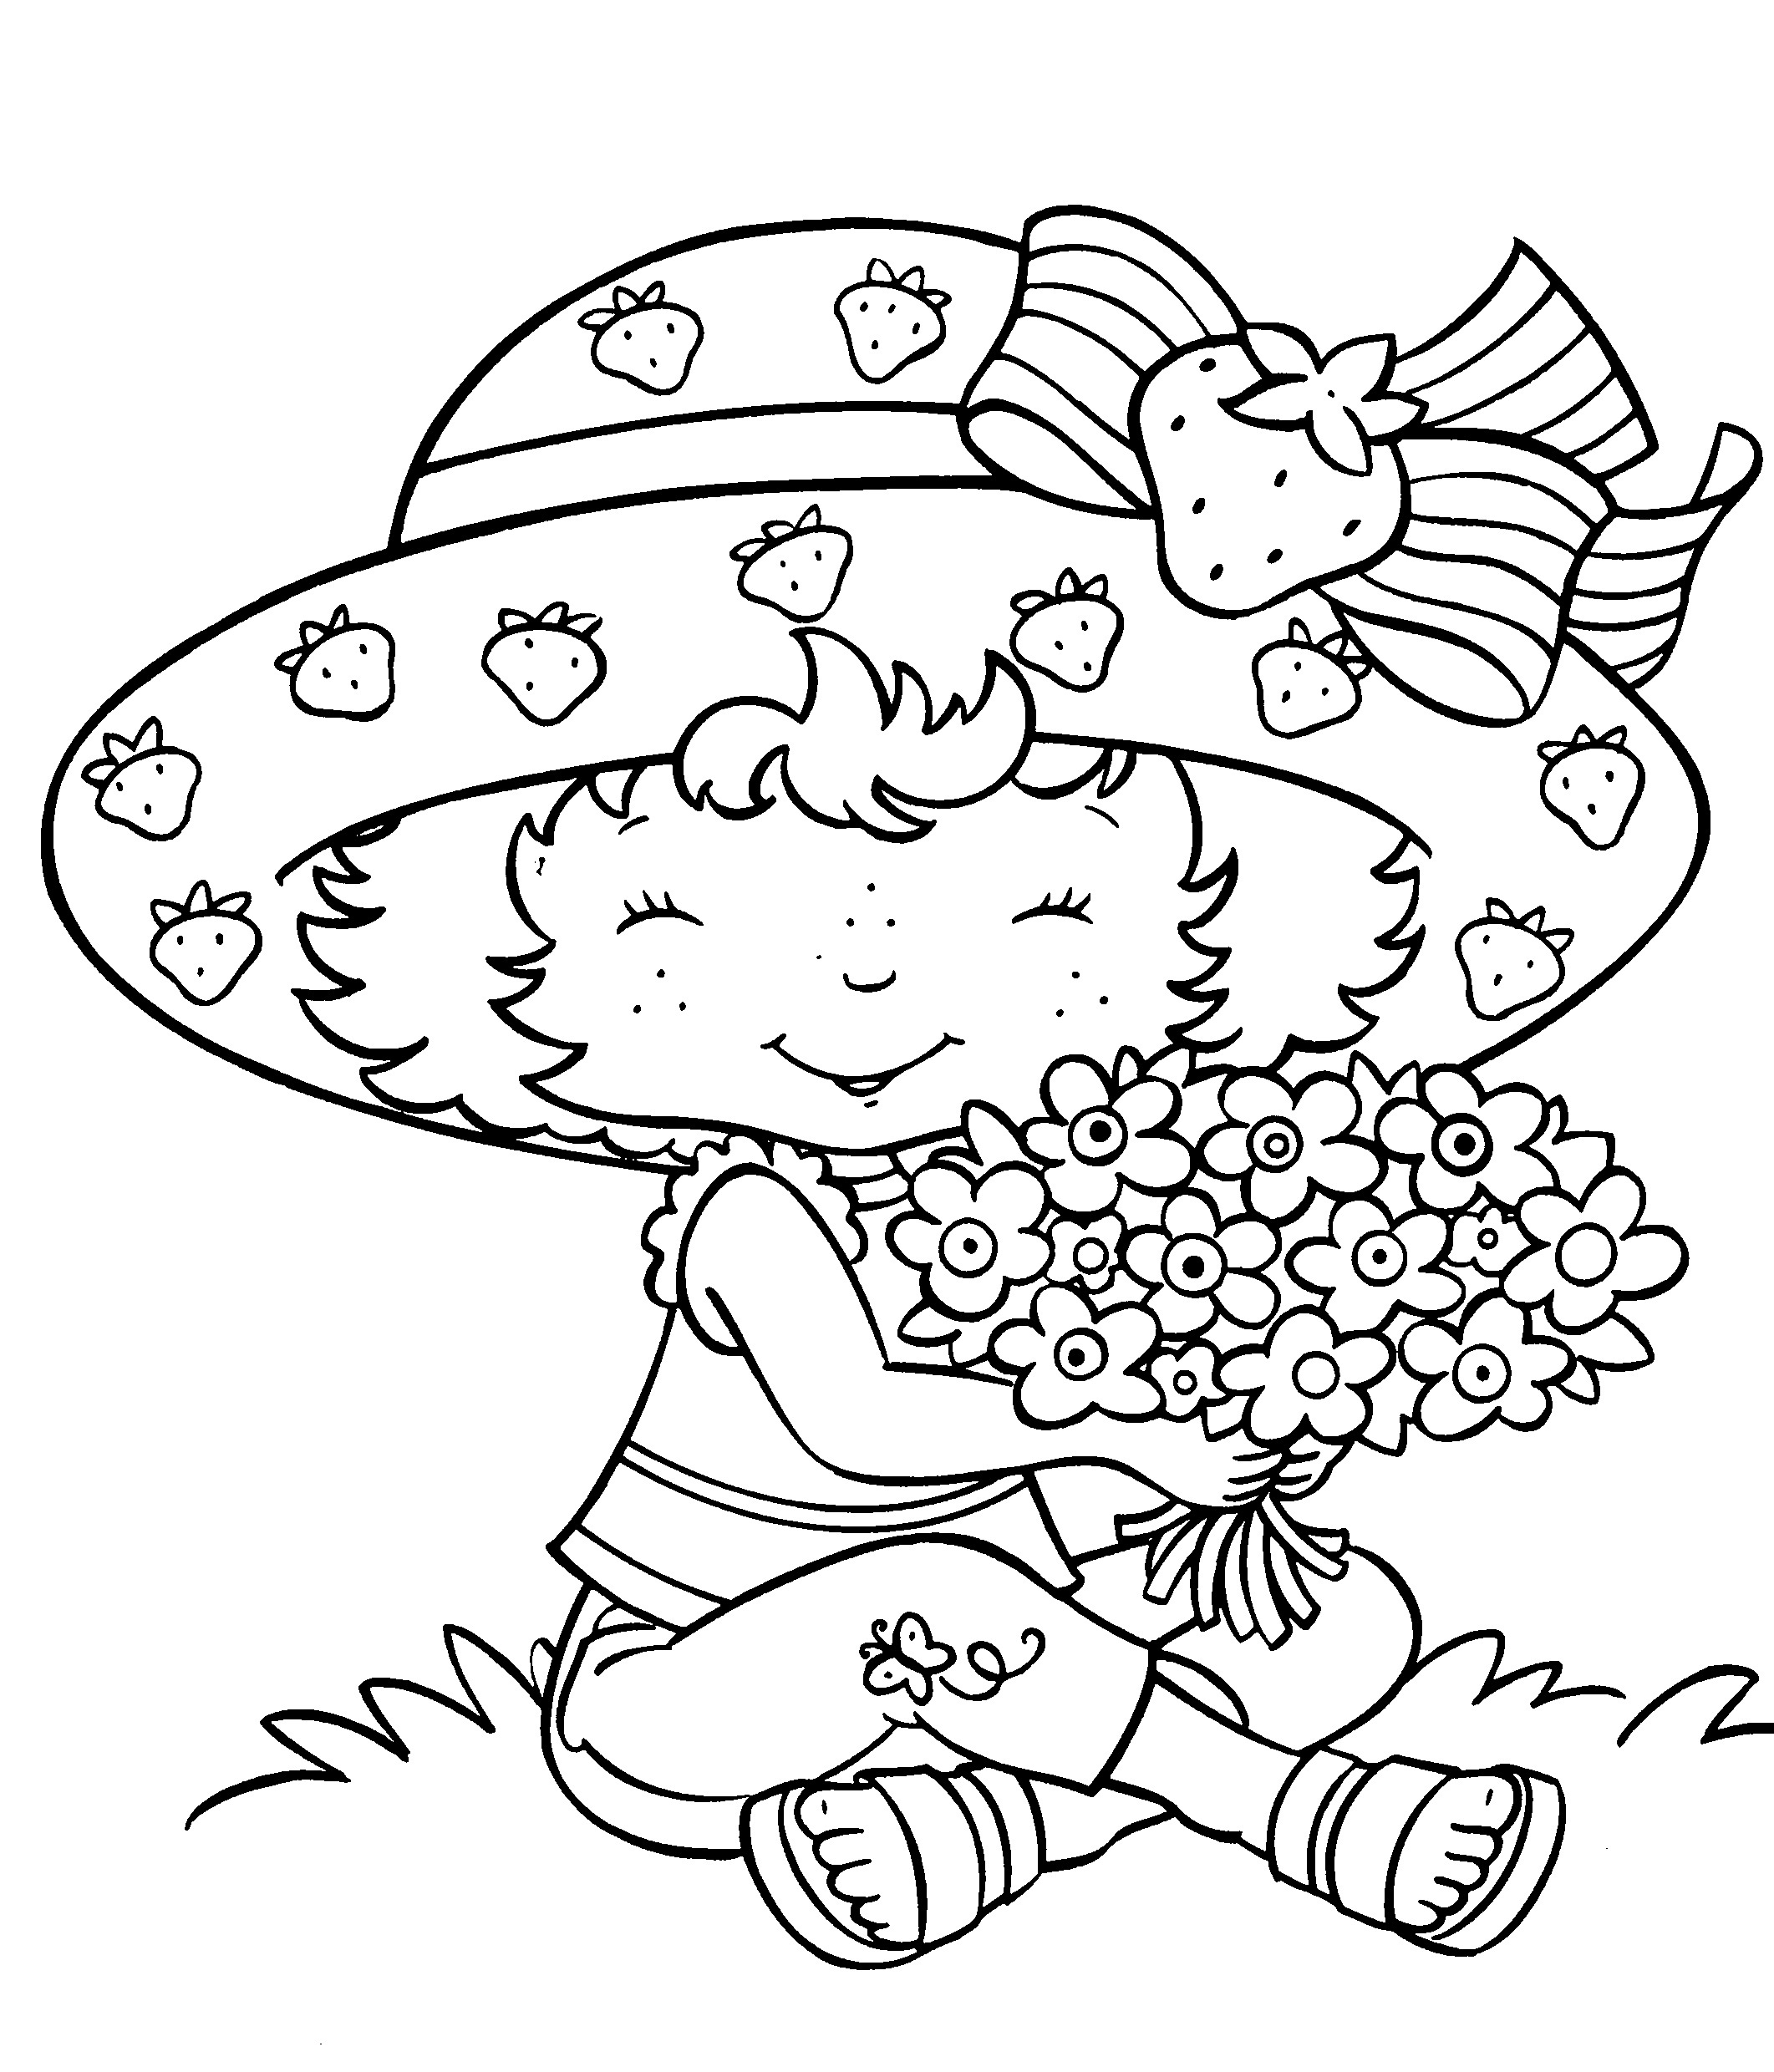 strawberry cake coloring pages strawberry cake with birthday candle coloring pages strawberry coloring pages cake